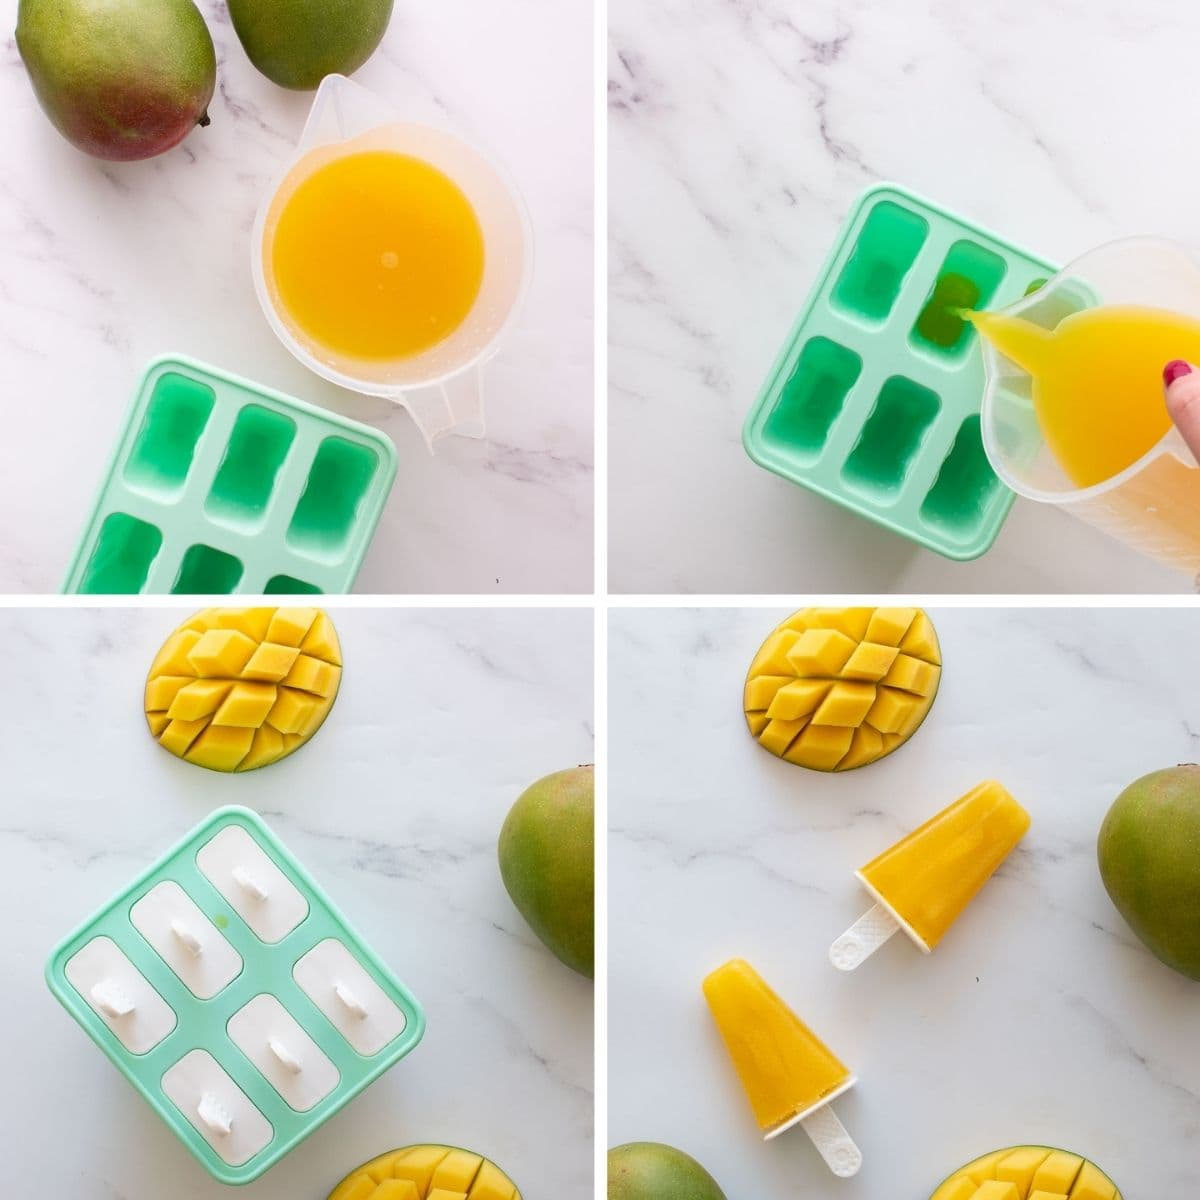 Step by step images showing how to make popsicles with mango juice.